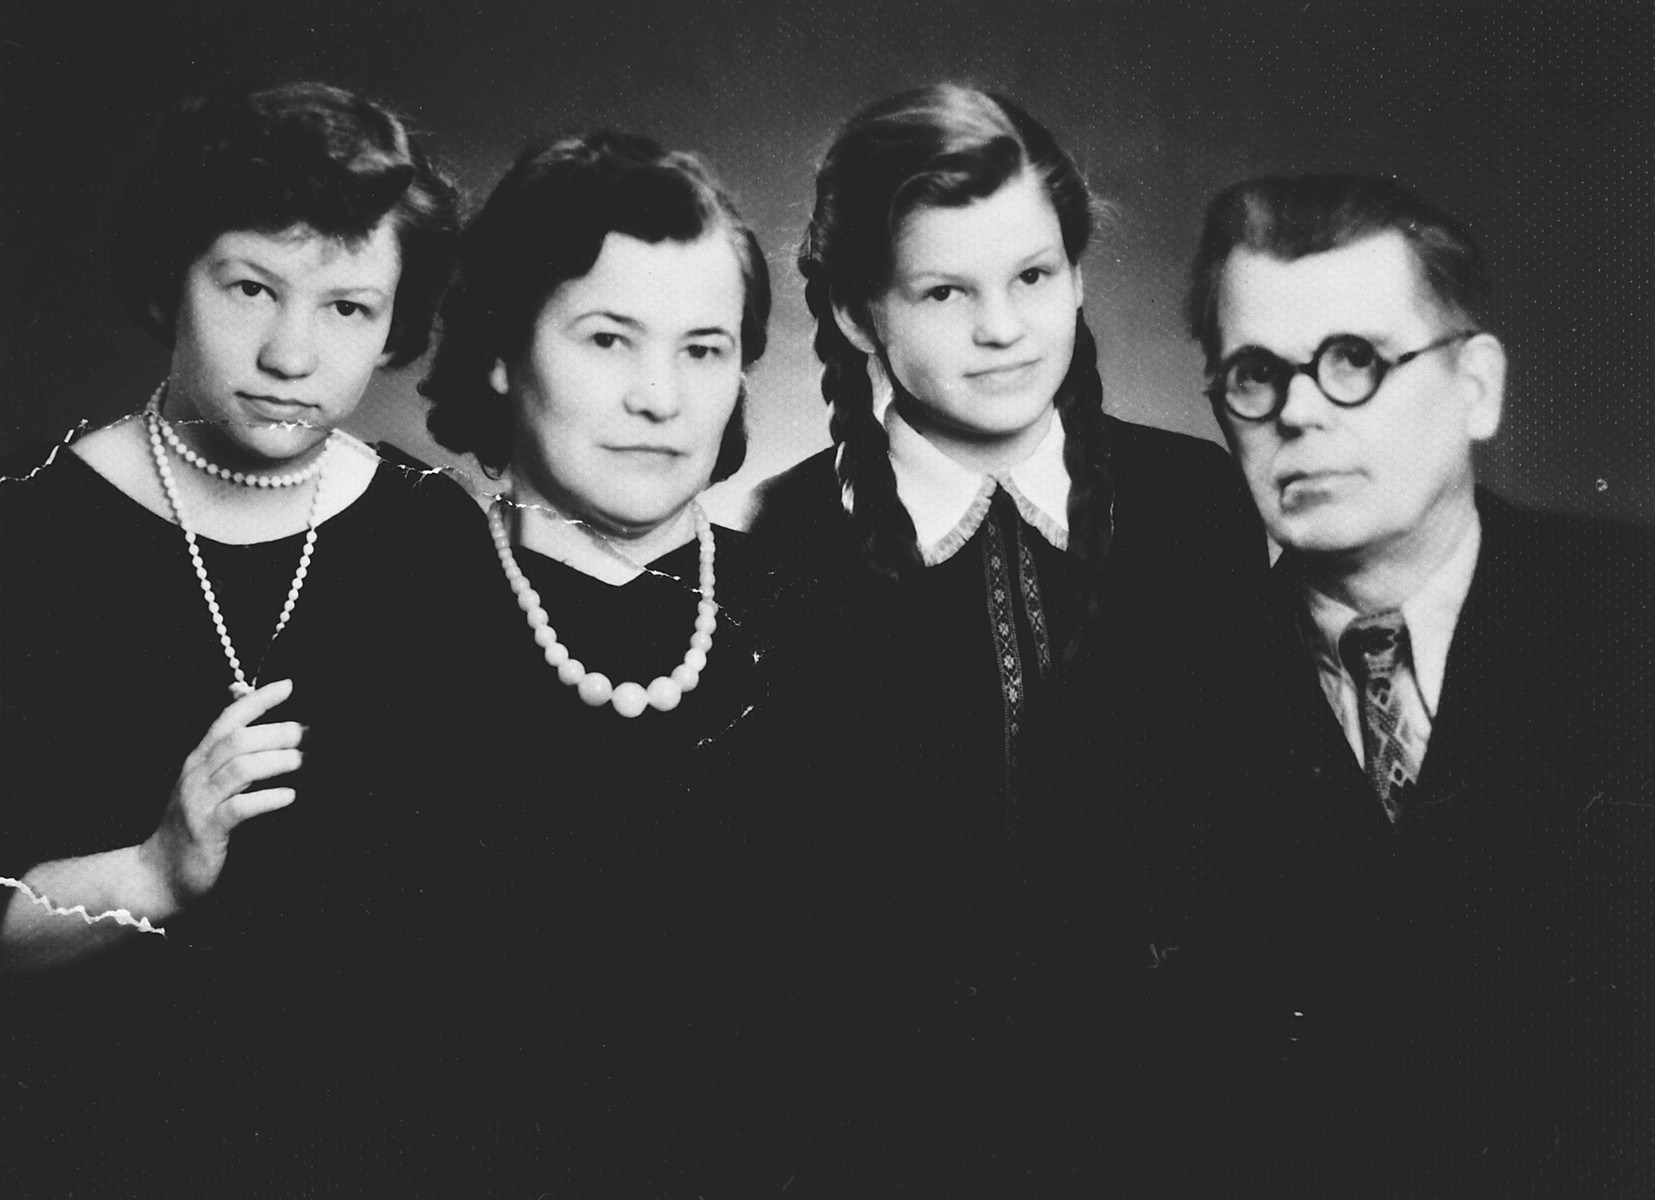 Postwar photograph of the family of Lithuanian rescuers, Vytautas and Elia Rinkevicius.